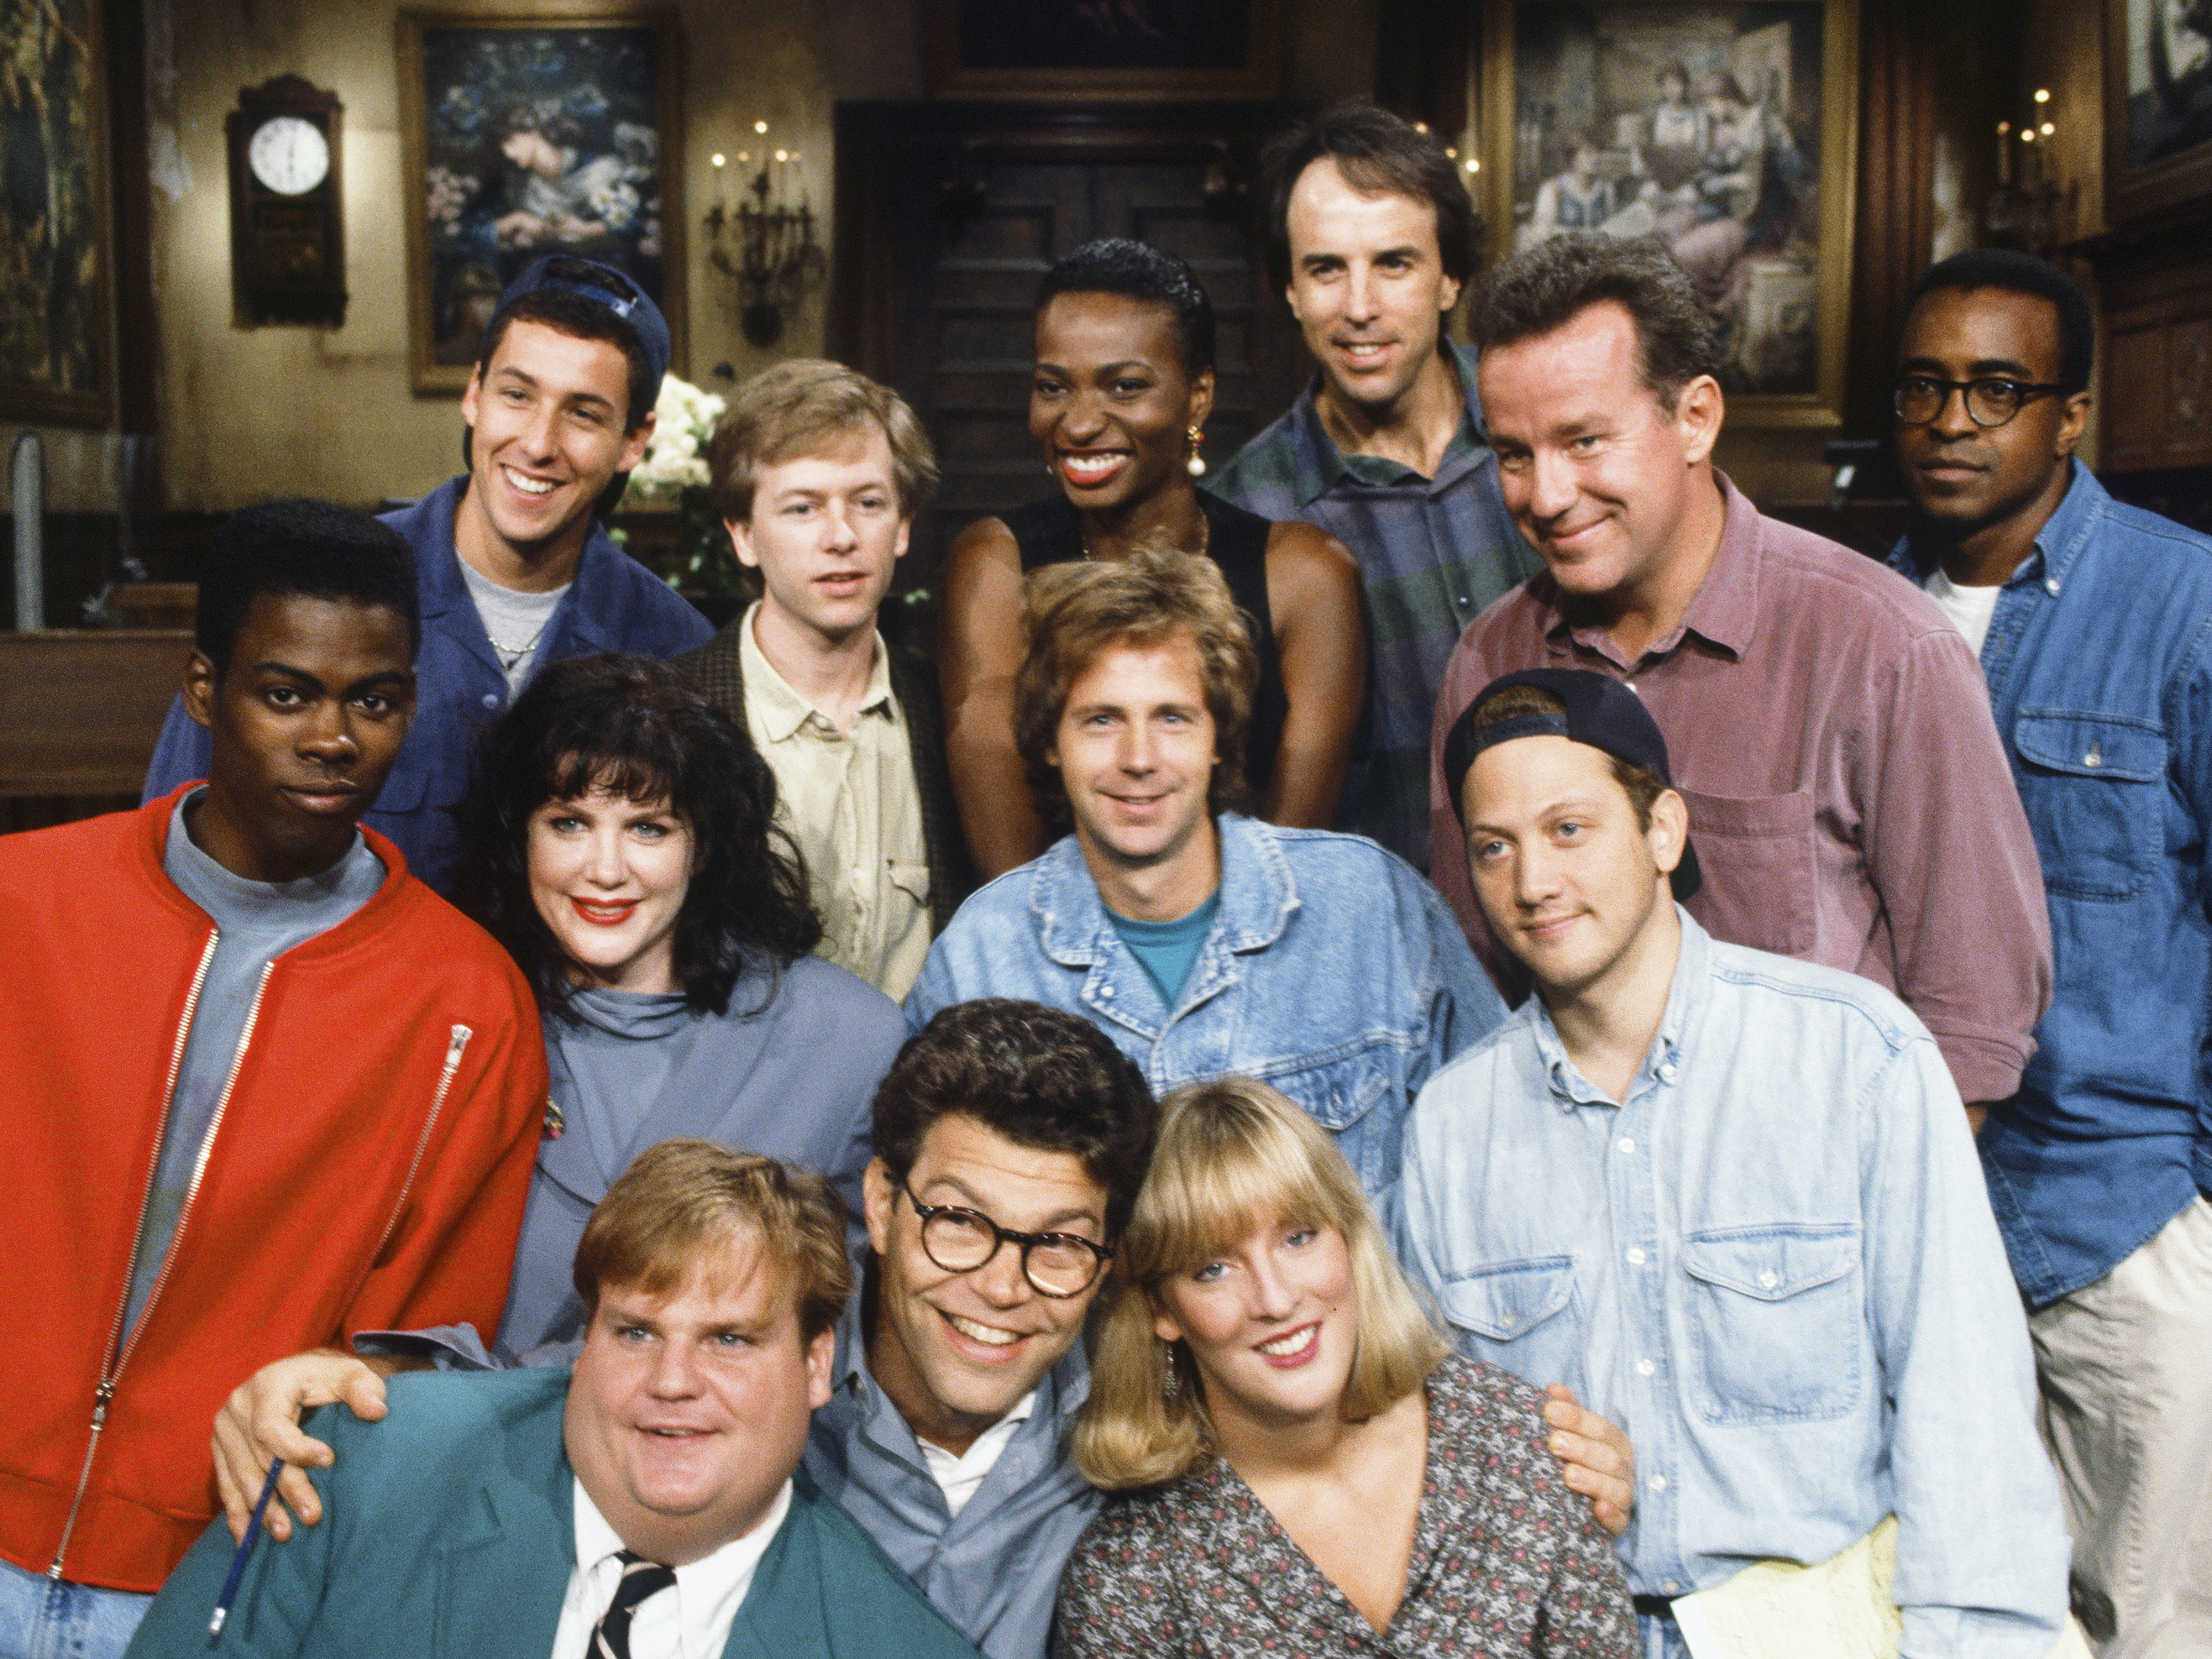 Saturday Night Live, Season 18 cast; pictured (back row left to right): Adam Sandler, David Spade, Ellen Cleghorne, Kevin Nealon, Phil Hartman, Tim Meadows (2nd row) Chris Rock, Julia Sweeney, Dana Carvey, Rob Schneider (front row l-r) Chris Farley, Al Franken and Melanie Hutshell.